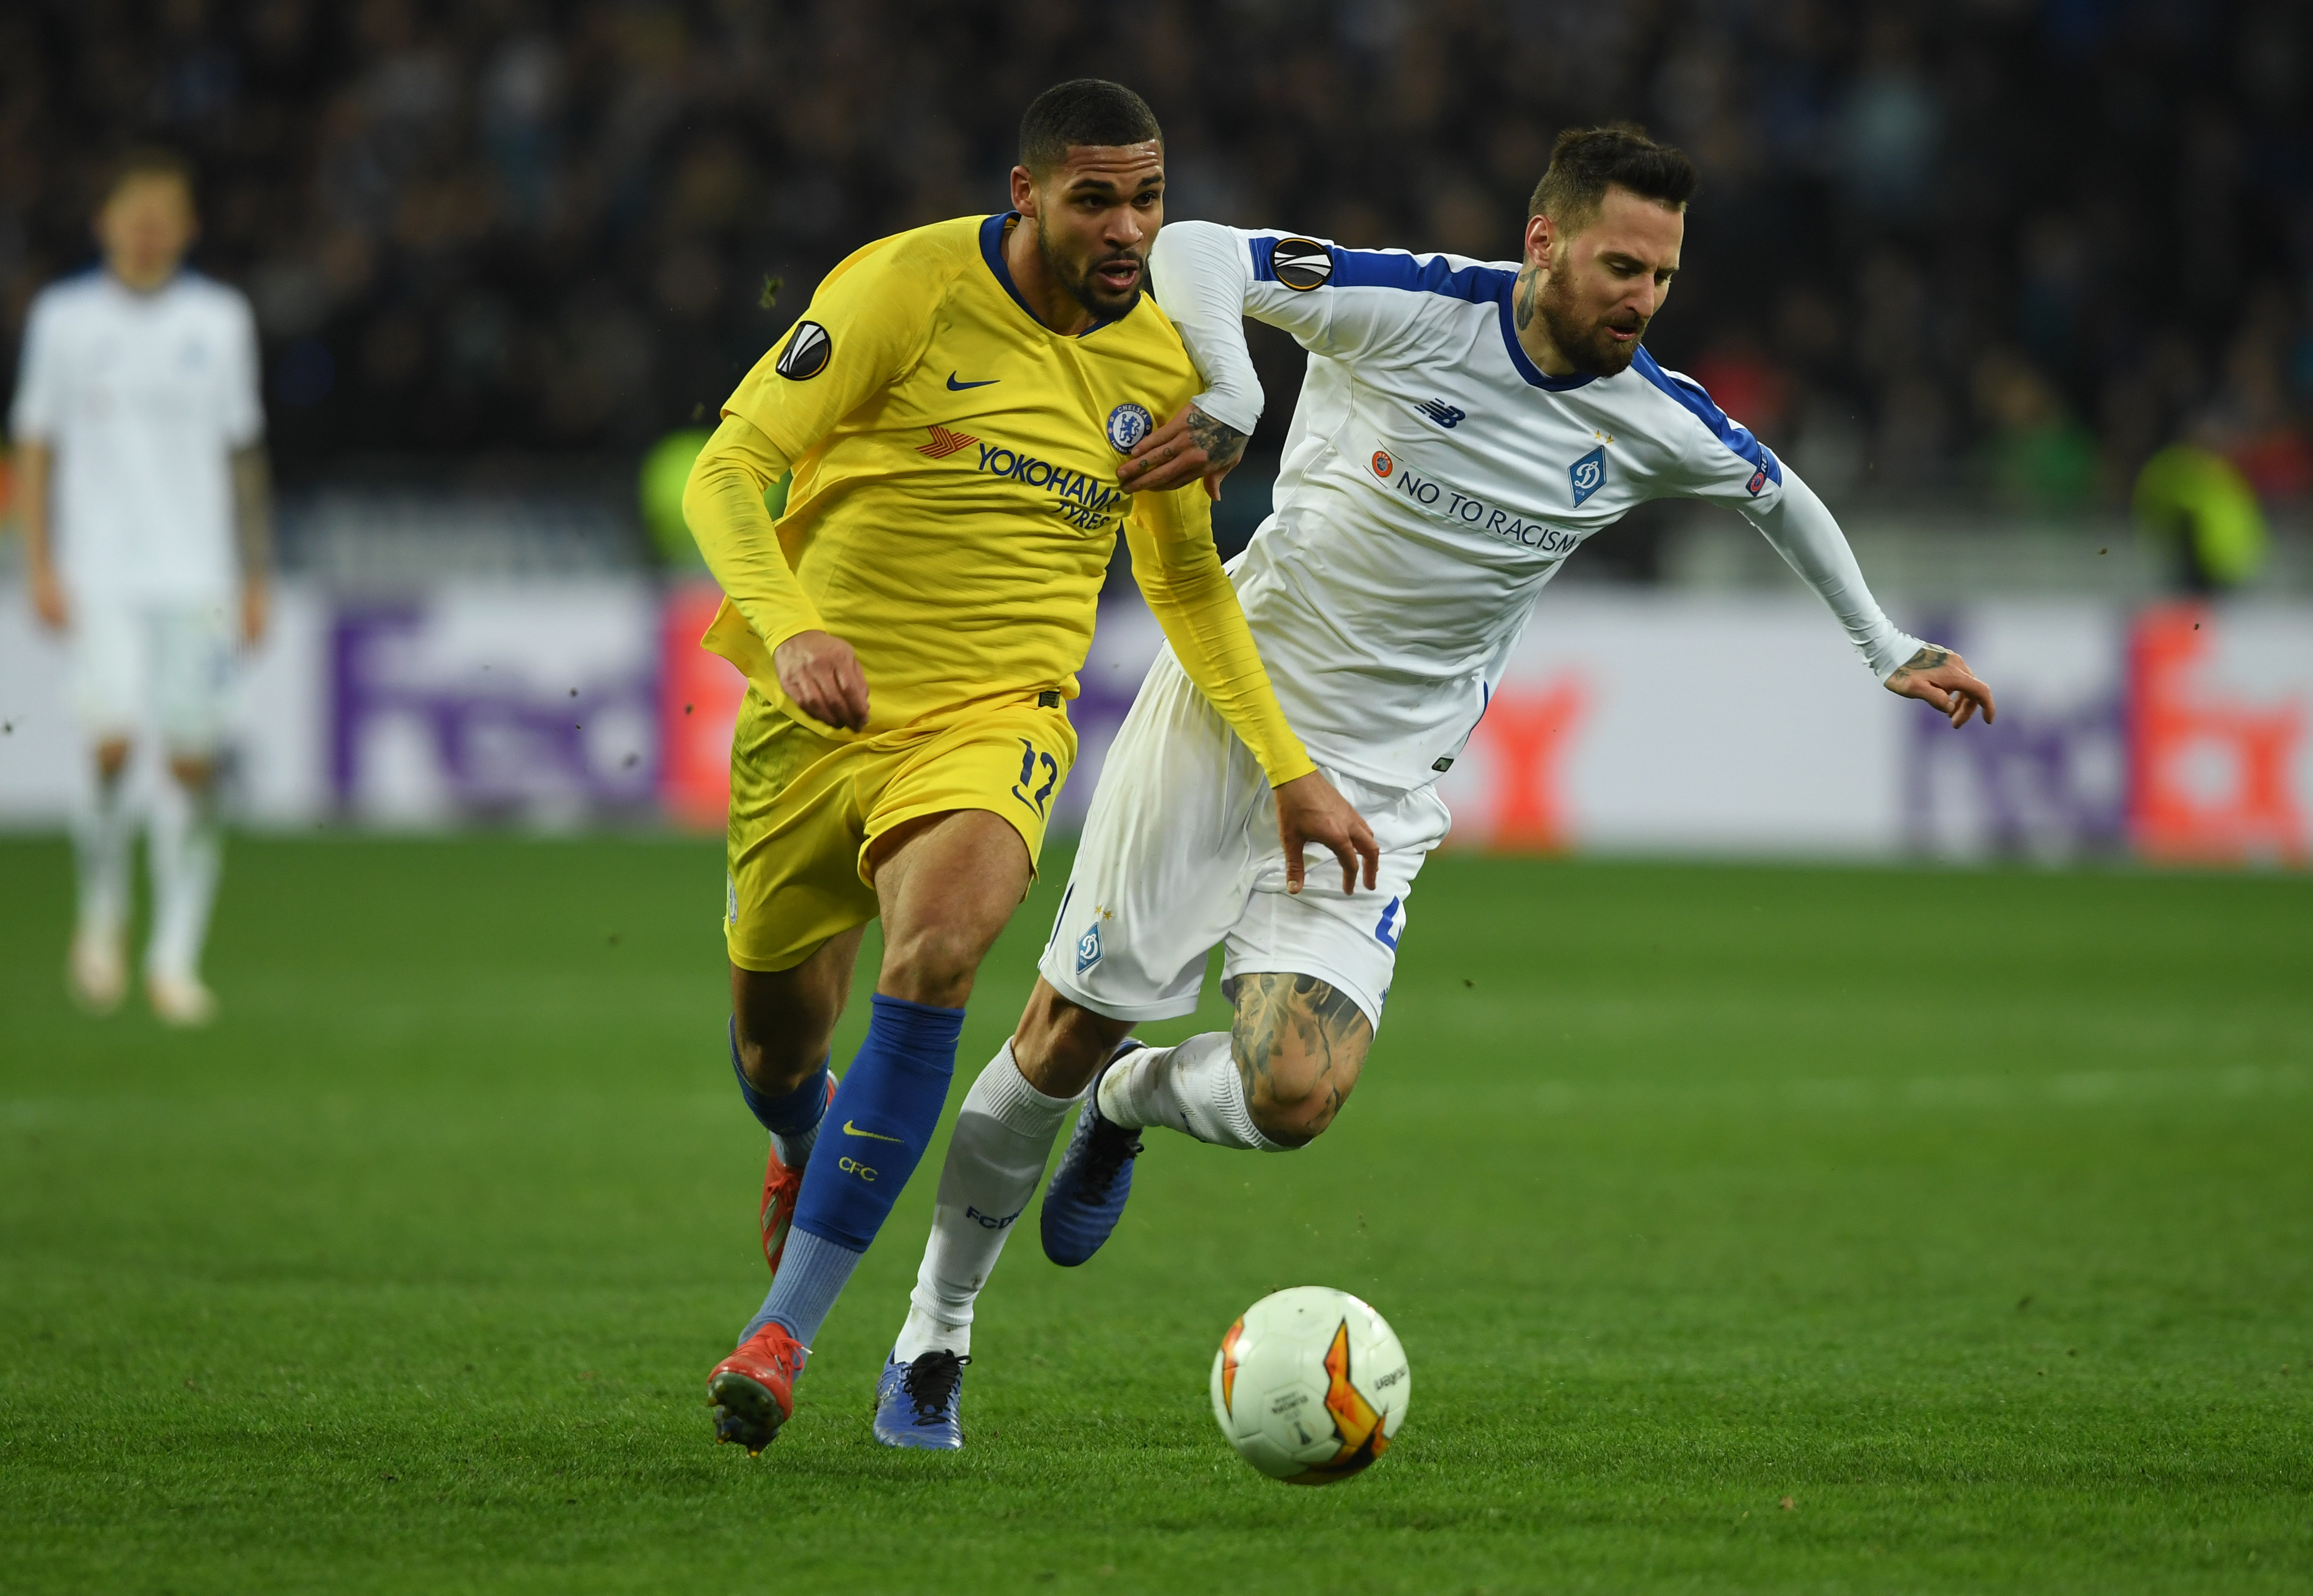 Loftus-Cheek hoping for good health and Europa League prosperity